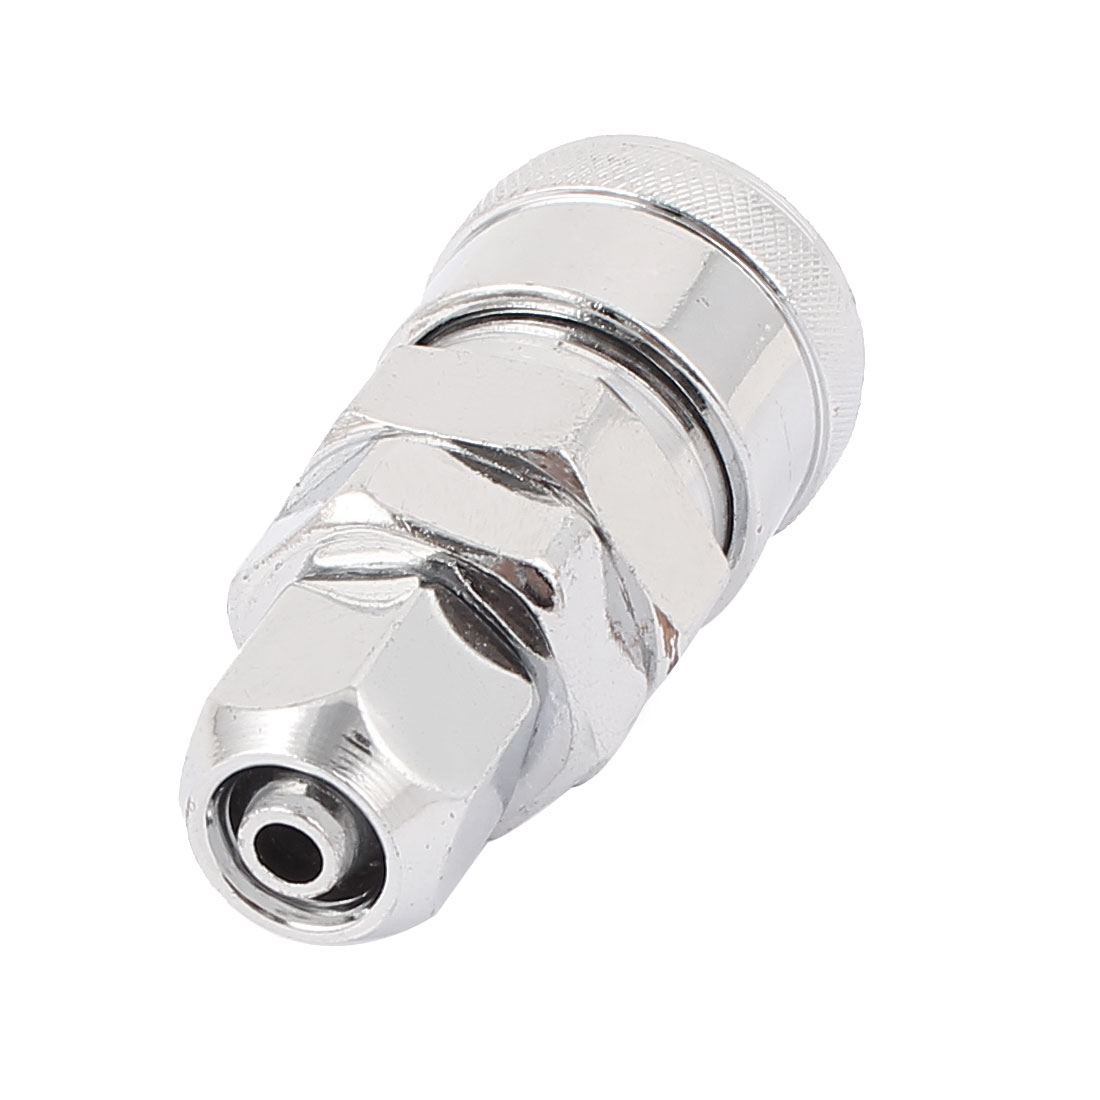 UXCELL 7Mm 1/16Bsp Female Thread 8Mm Pipe Air Compressor Quick Coupler Connector air compressor o ring 1 2pt thread oil level sight glass